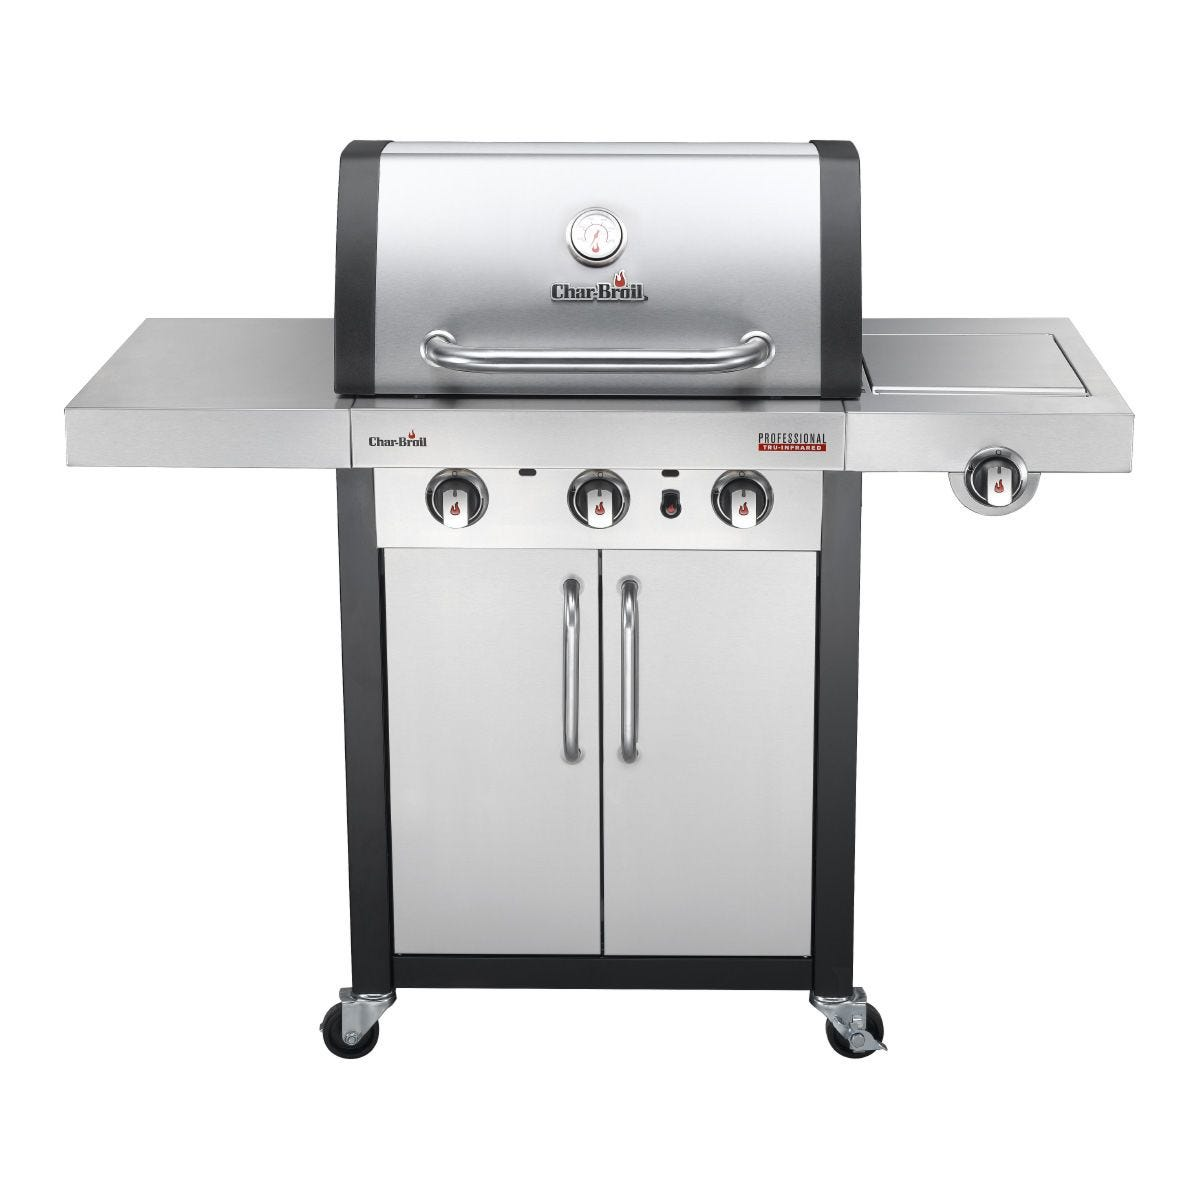 Char-Broil Professional 3400S 3 Burner Gas BBQ - Stainless Steel